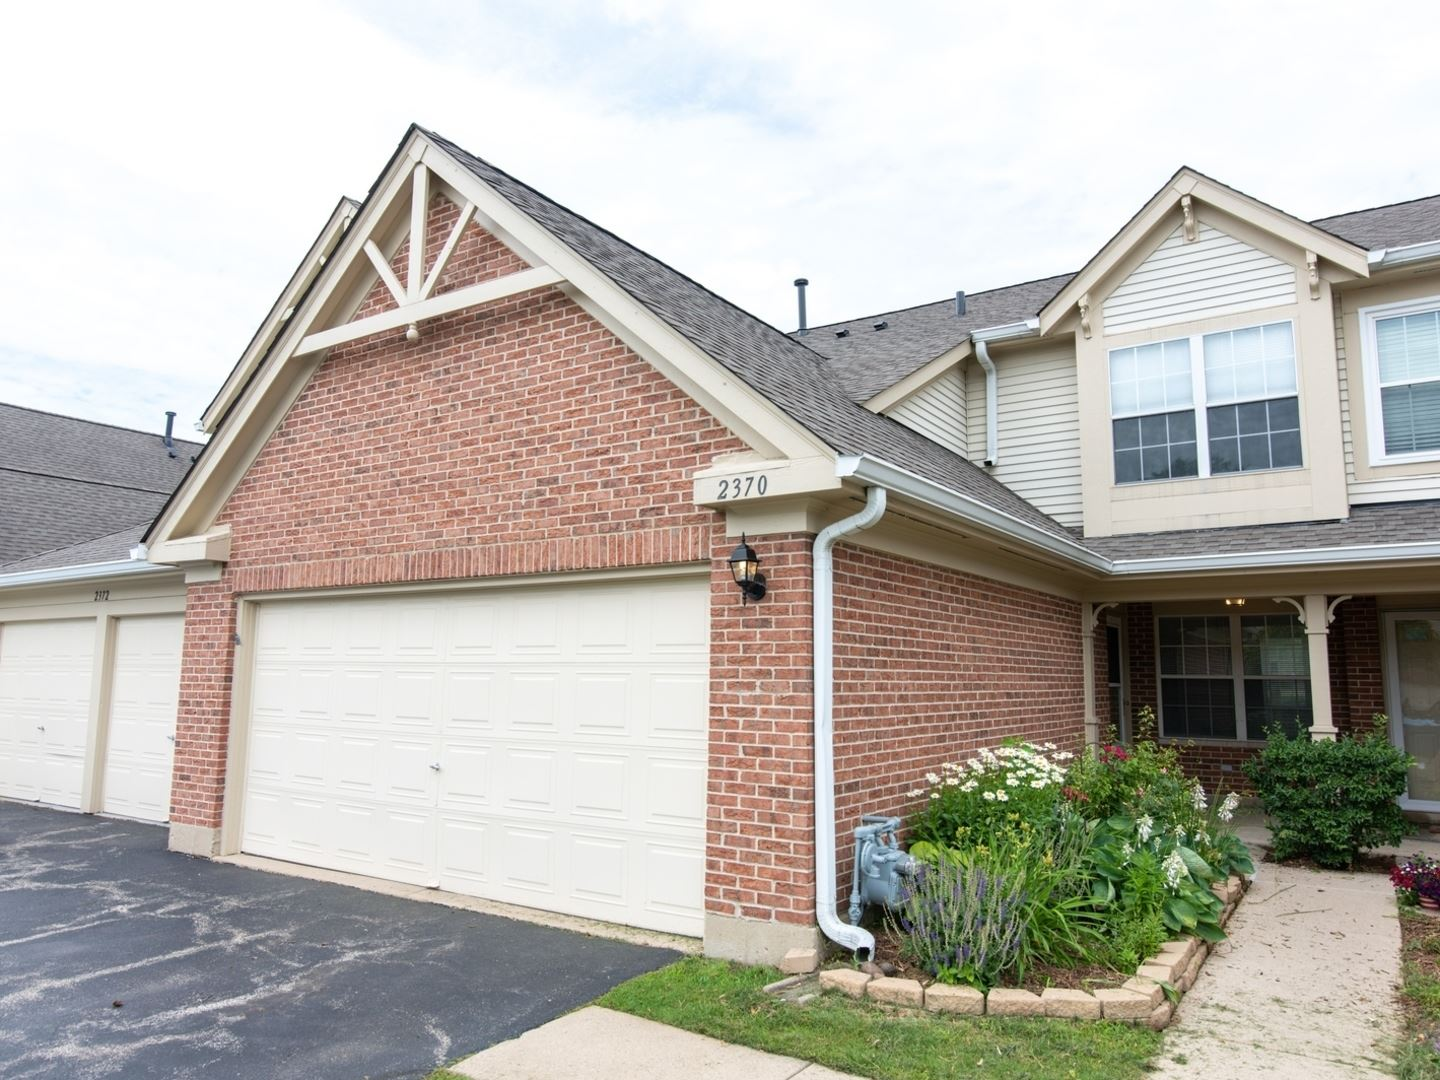 2370 COUNTY FARM Lane #D216, Schaumburg, IL 60194 - #: 10767494